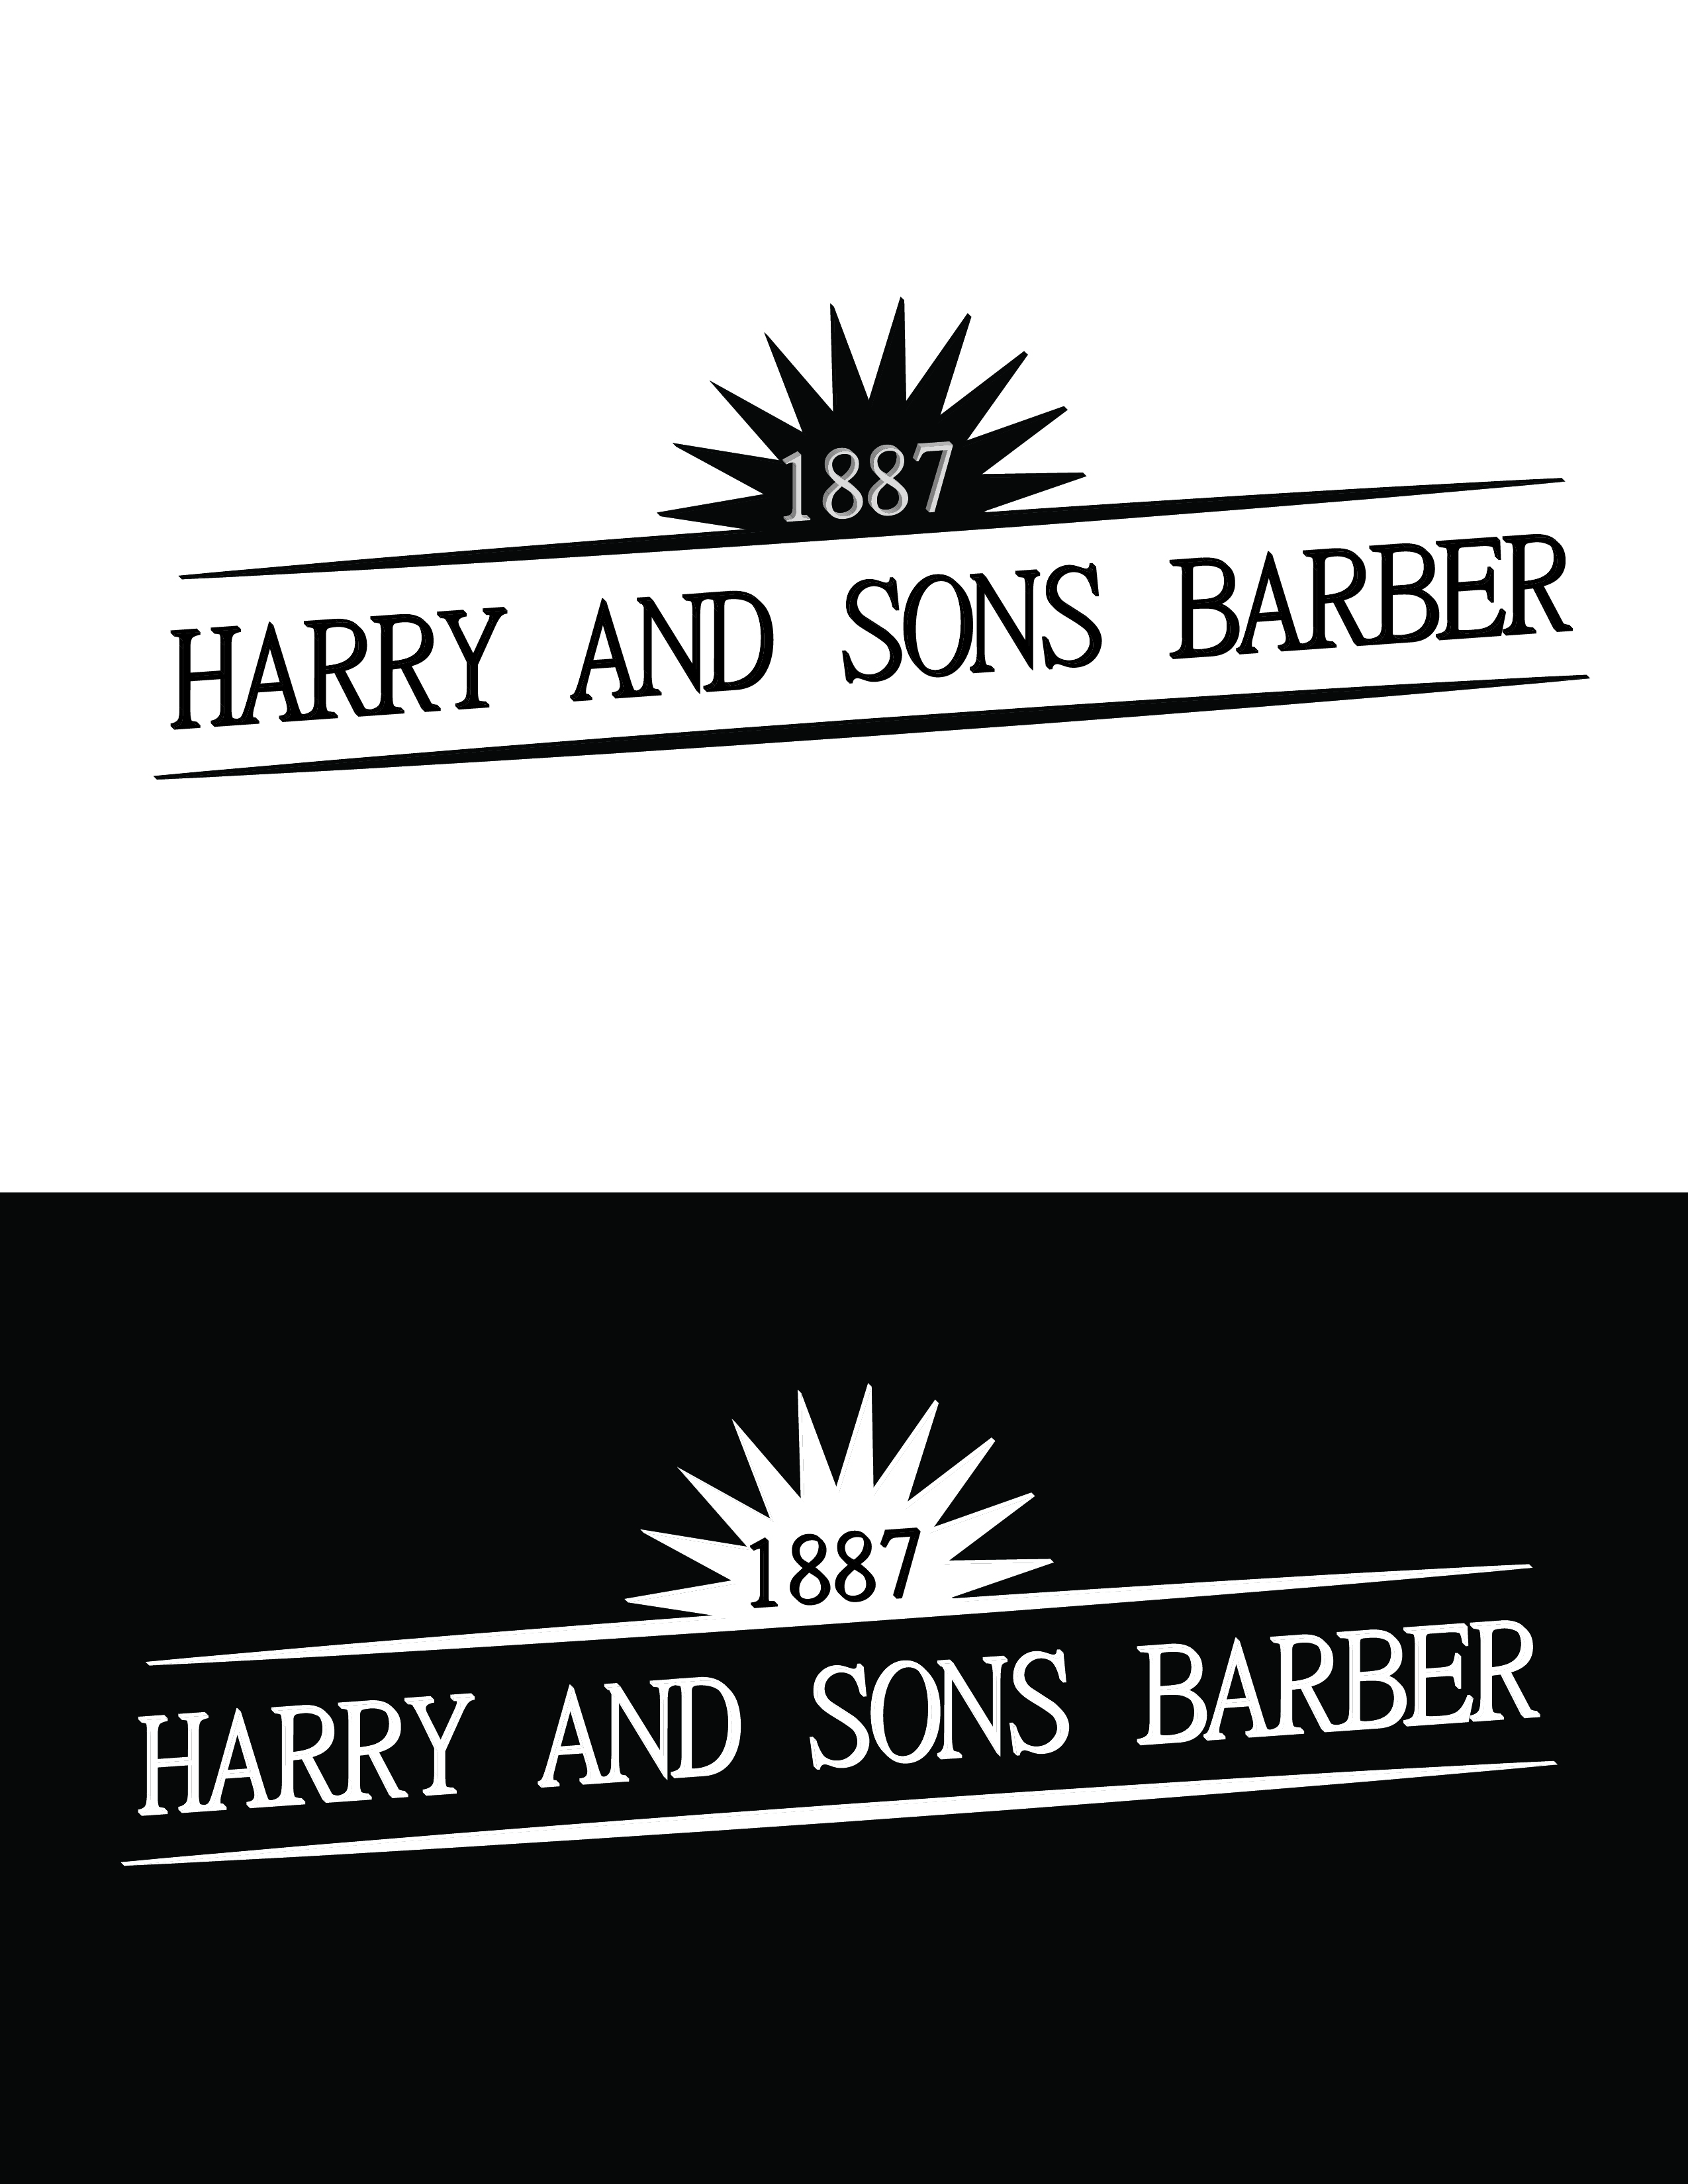 Logo Design by AQIB SHAIKH - Entry No. 216 in the Logo Design Contest Captivating Logo Design for Harry and Sons Barber.